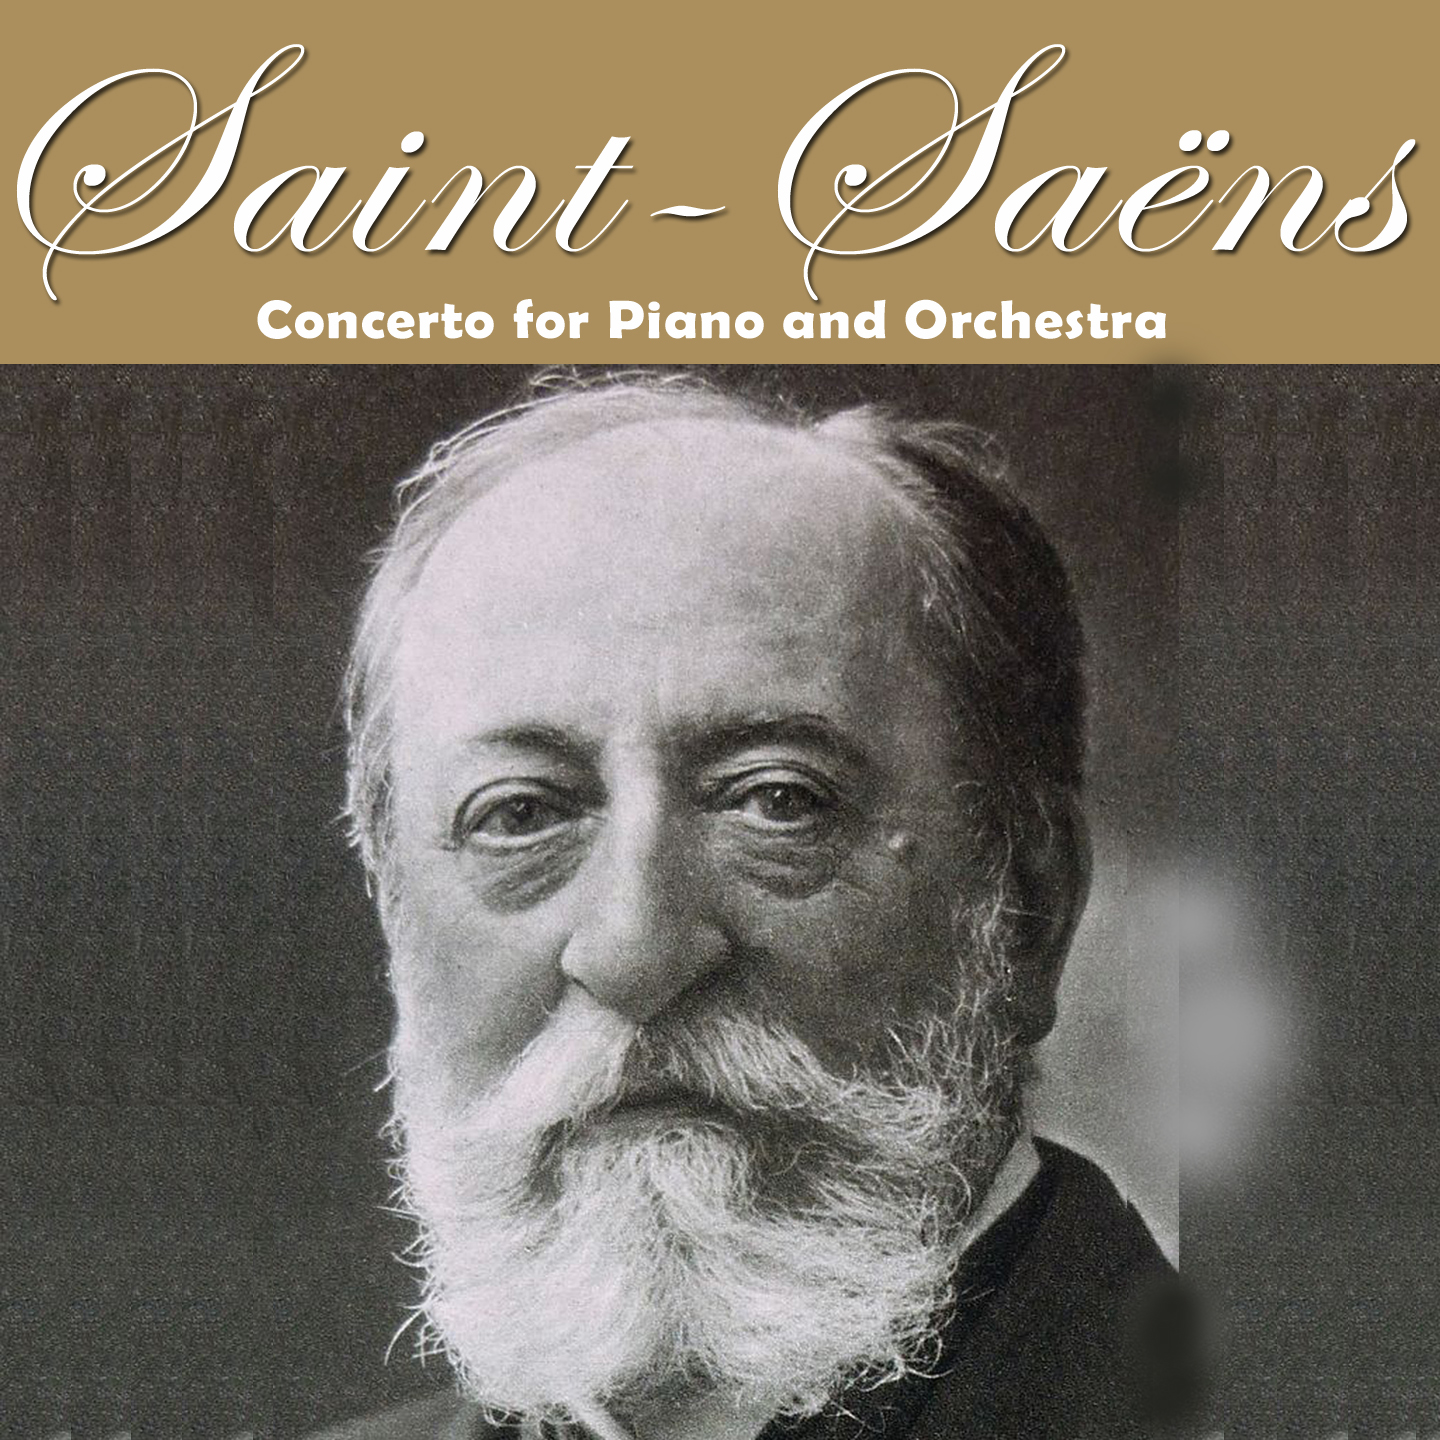 Saint-Saëns: Piano Concerto No. 2